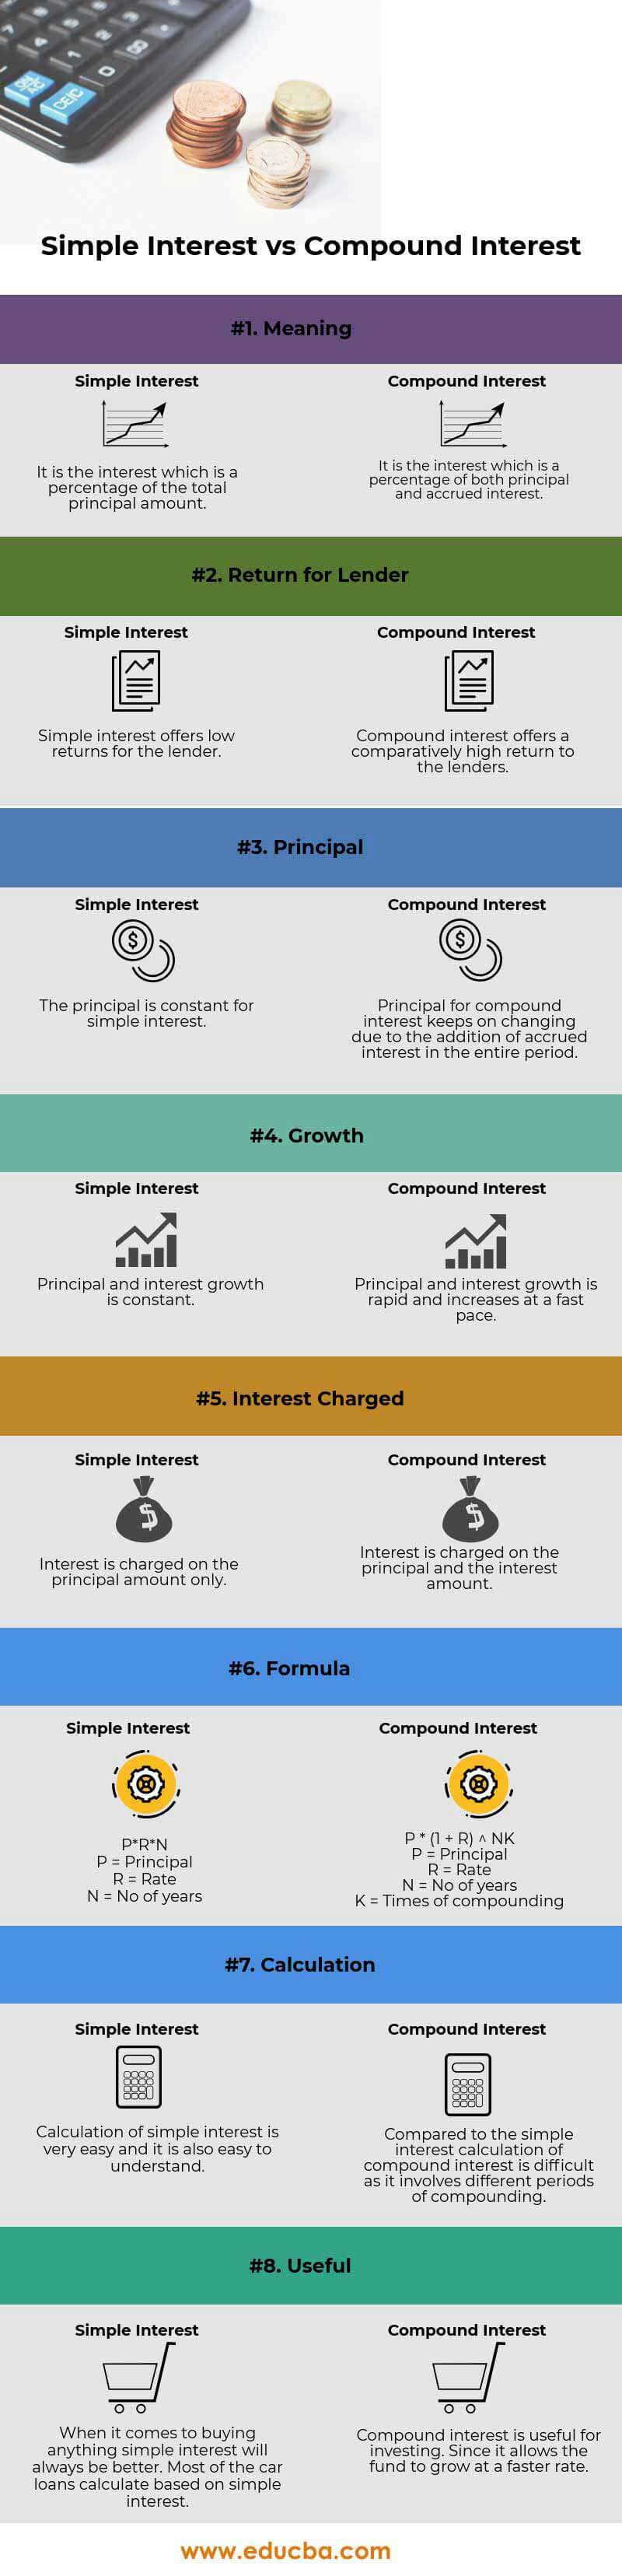 Simple Interest vs Compound Interest info